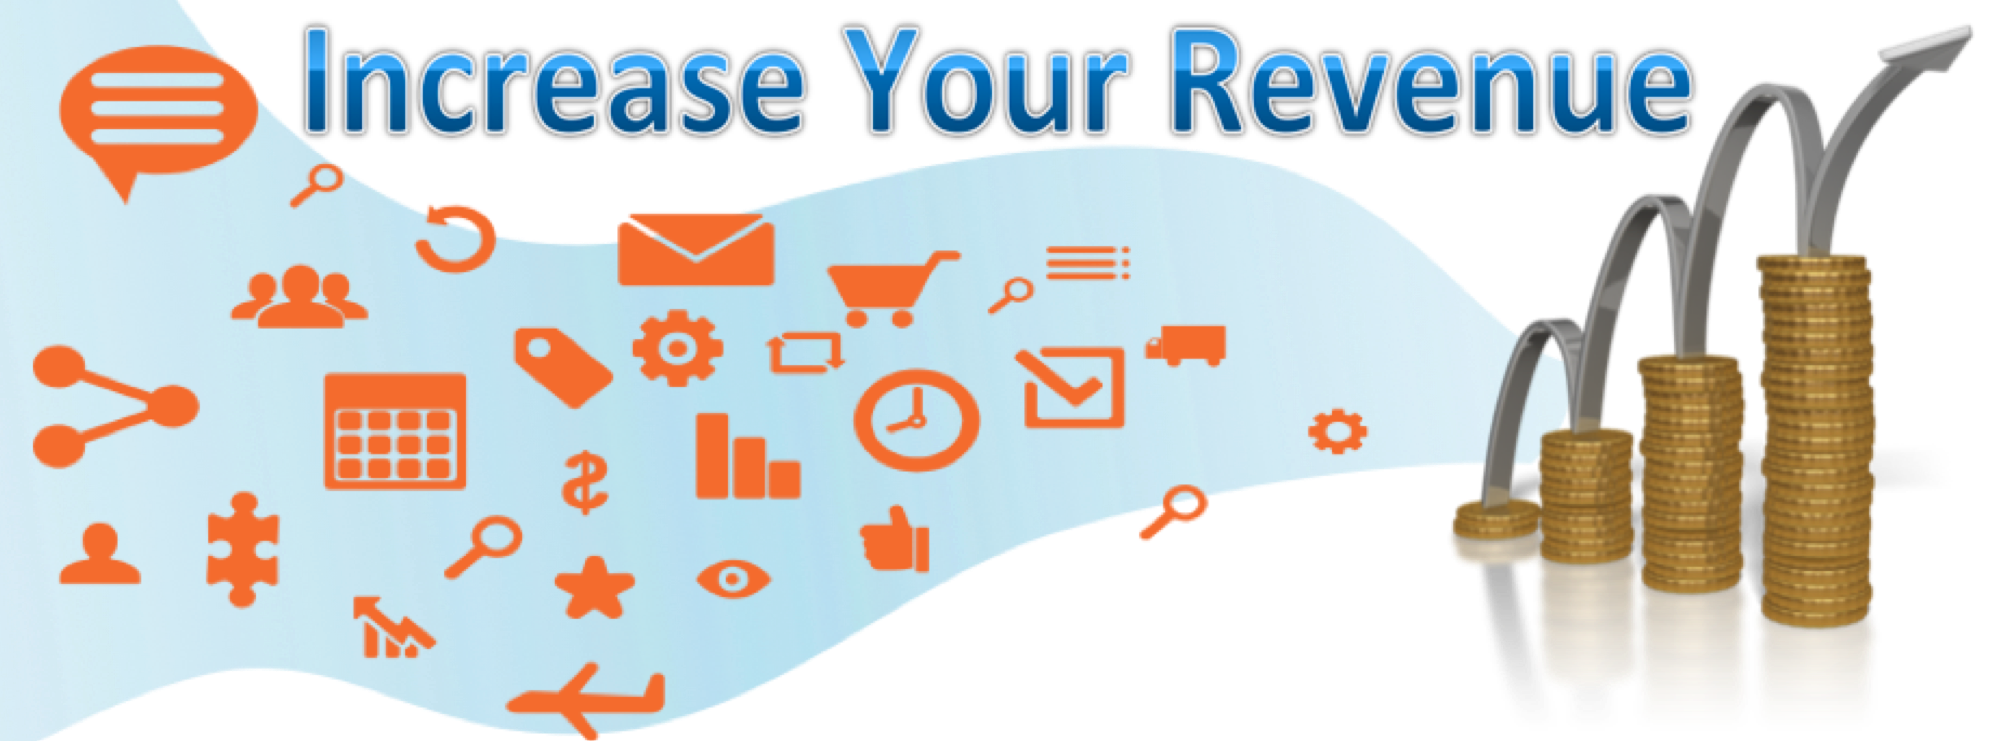 Increase your Revenue